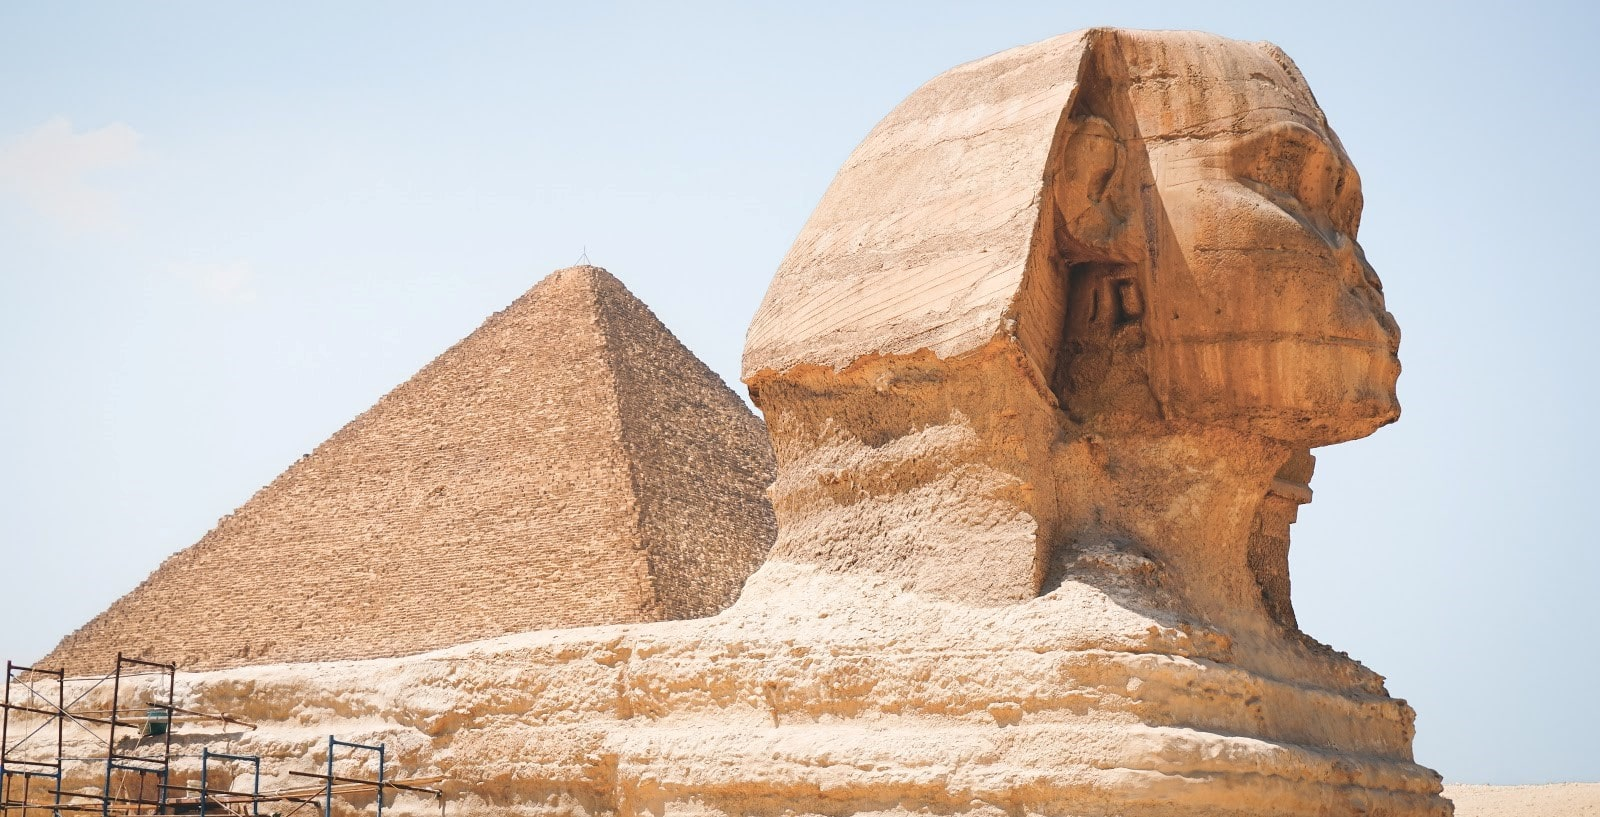 pharaonic tombs in Egypt